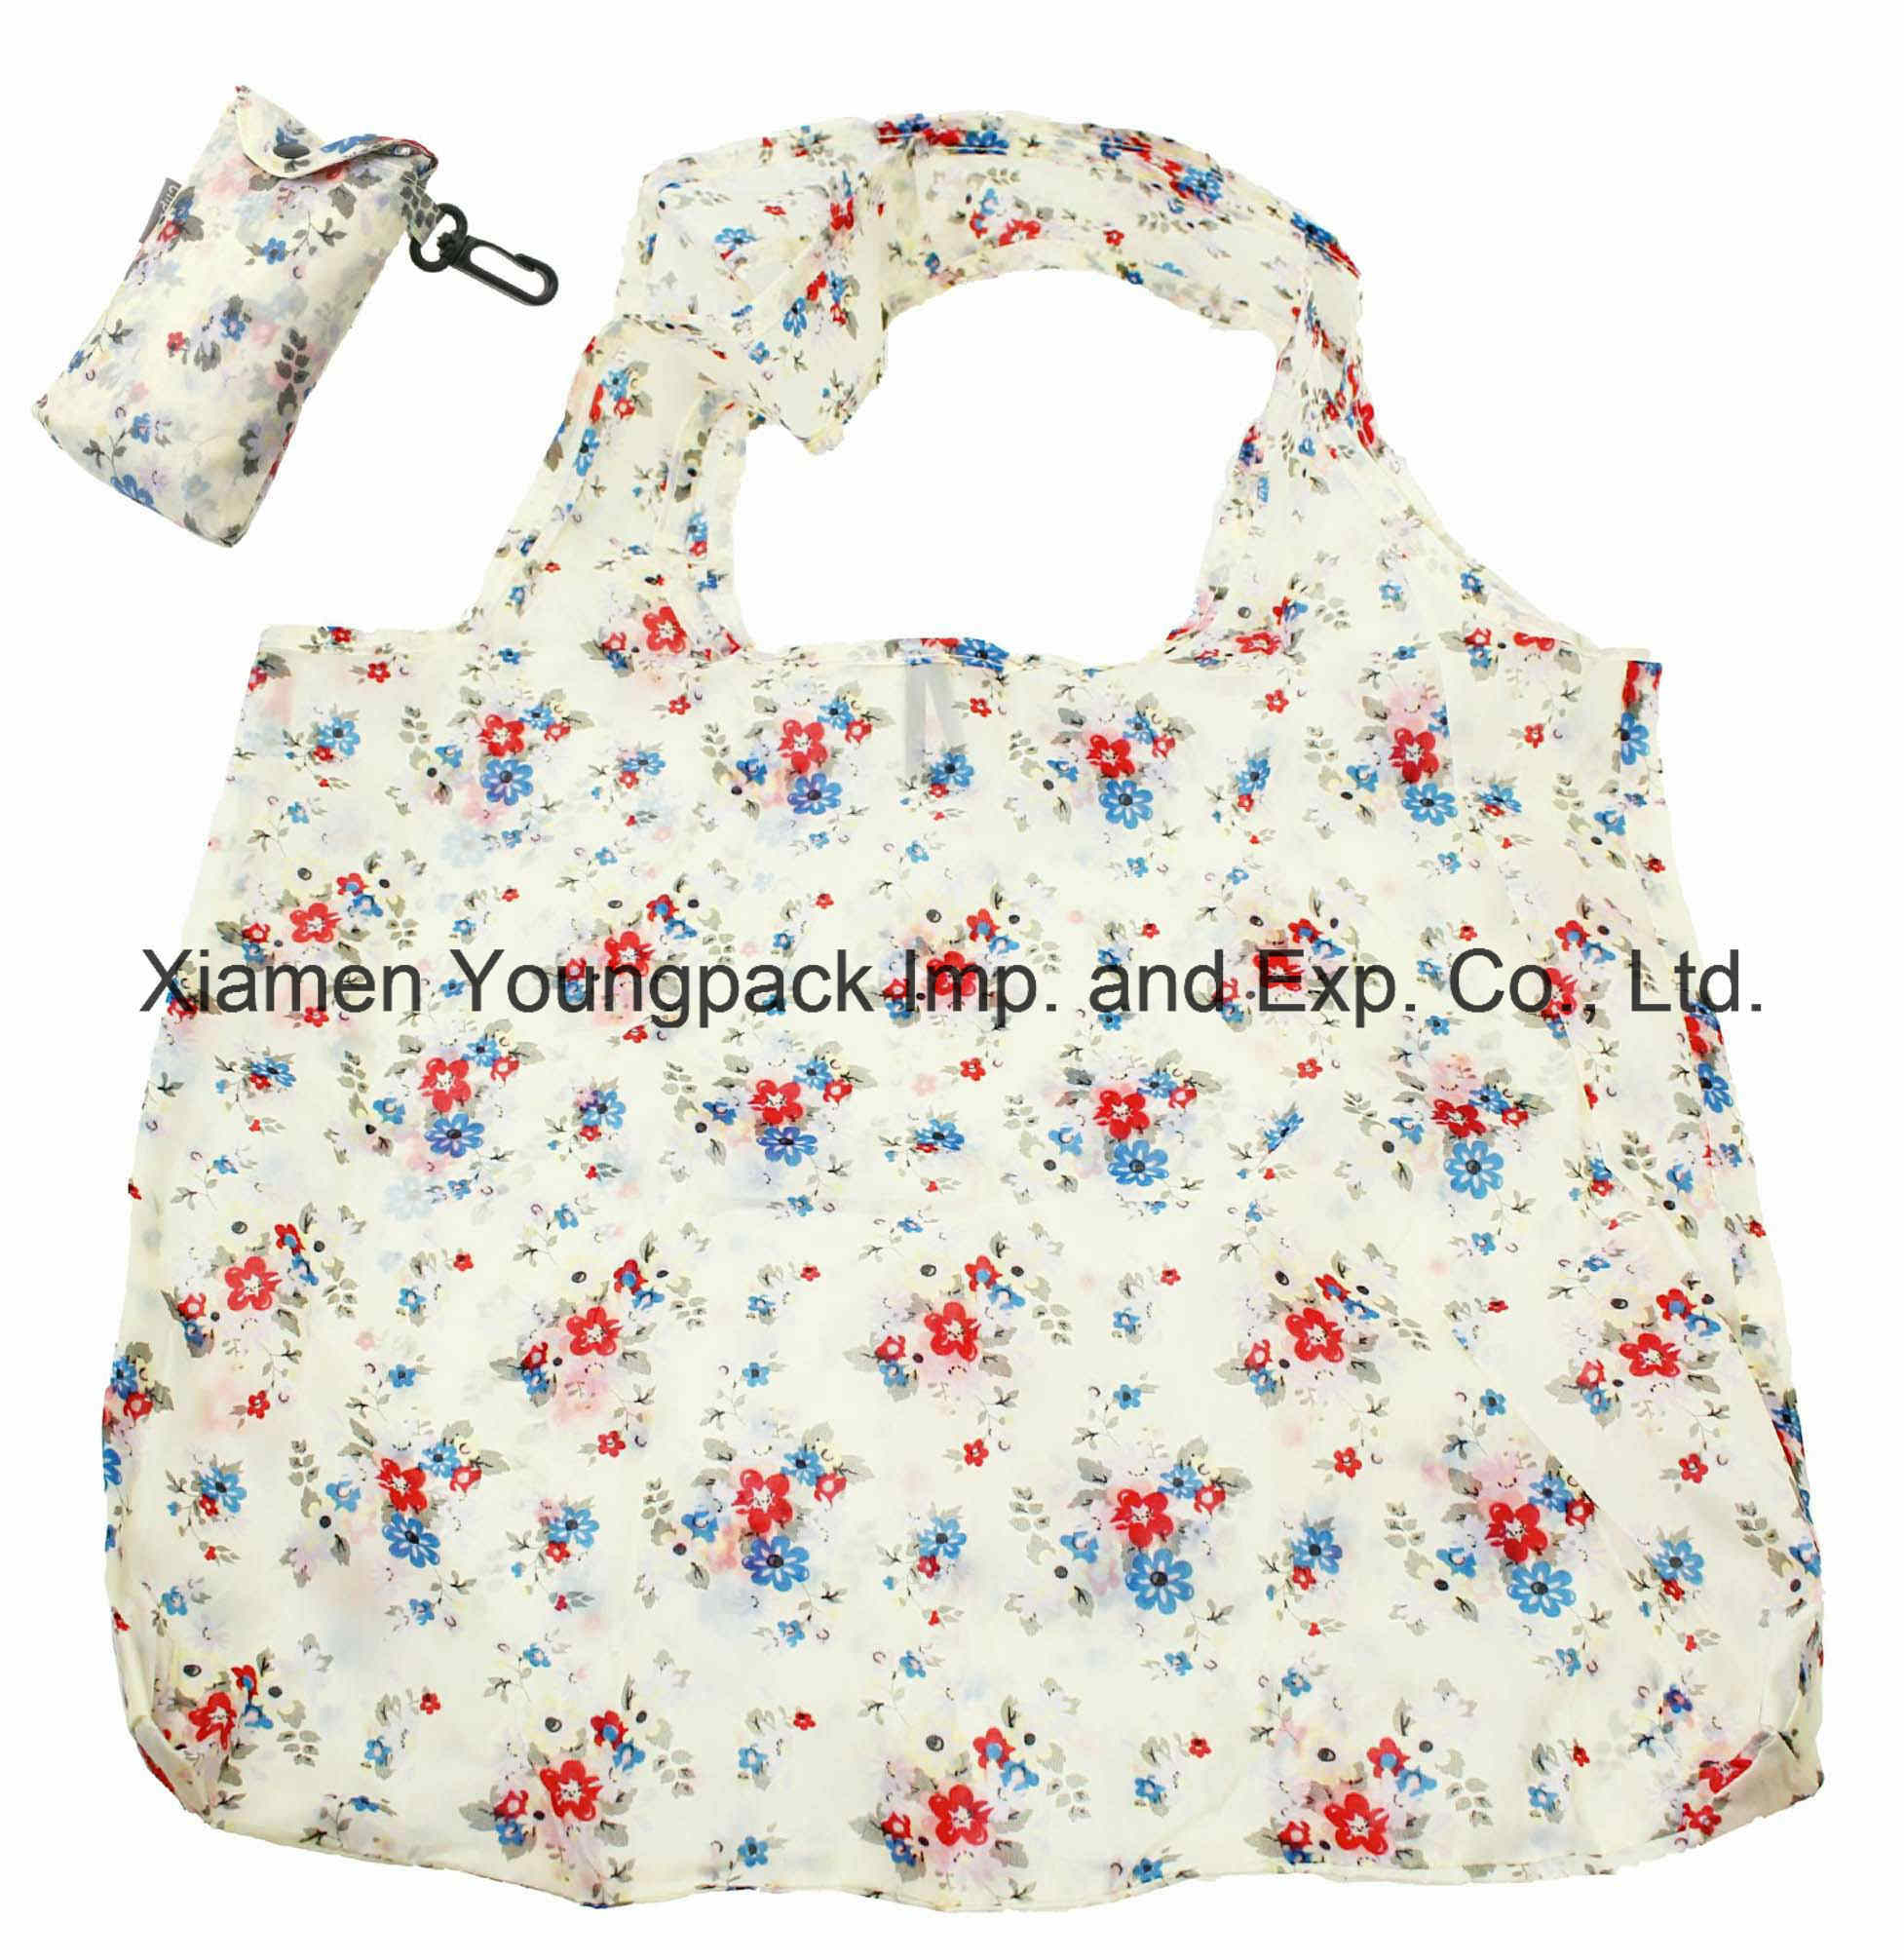 Customized Flower Design Nylon Fold up Shopping Bag in Pouch with Clip Attachment